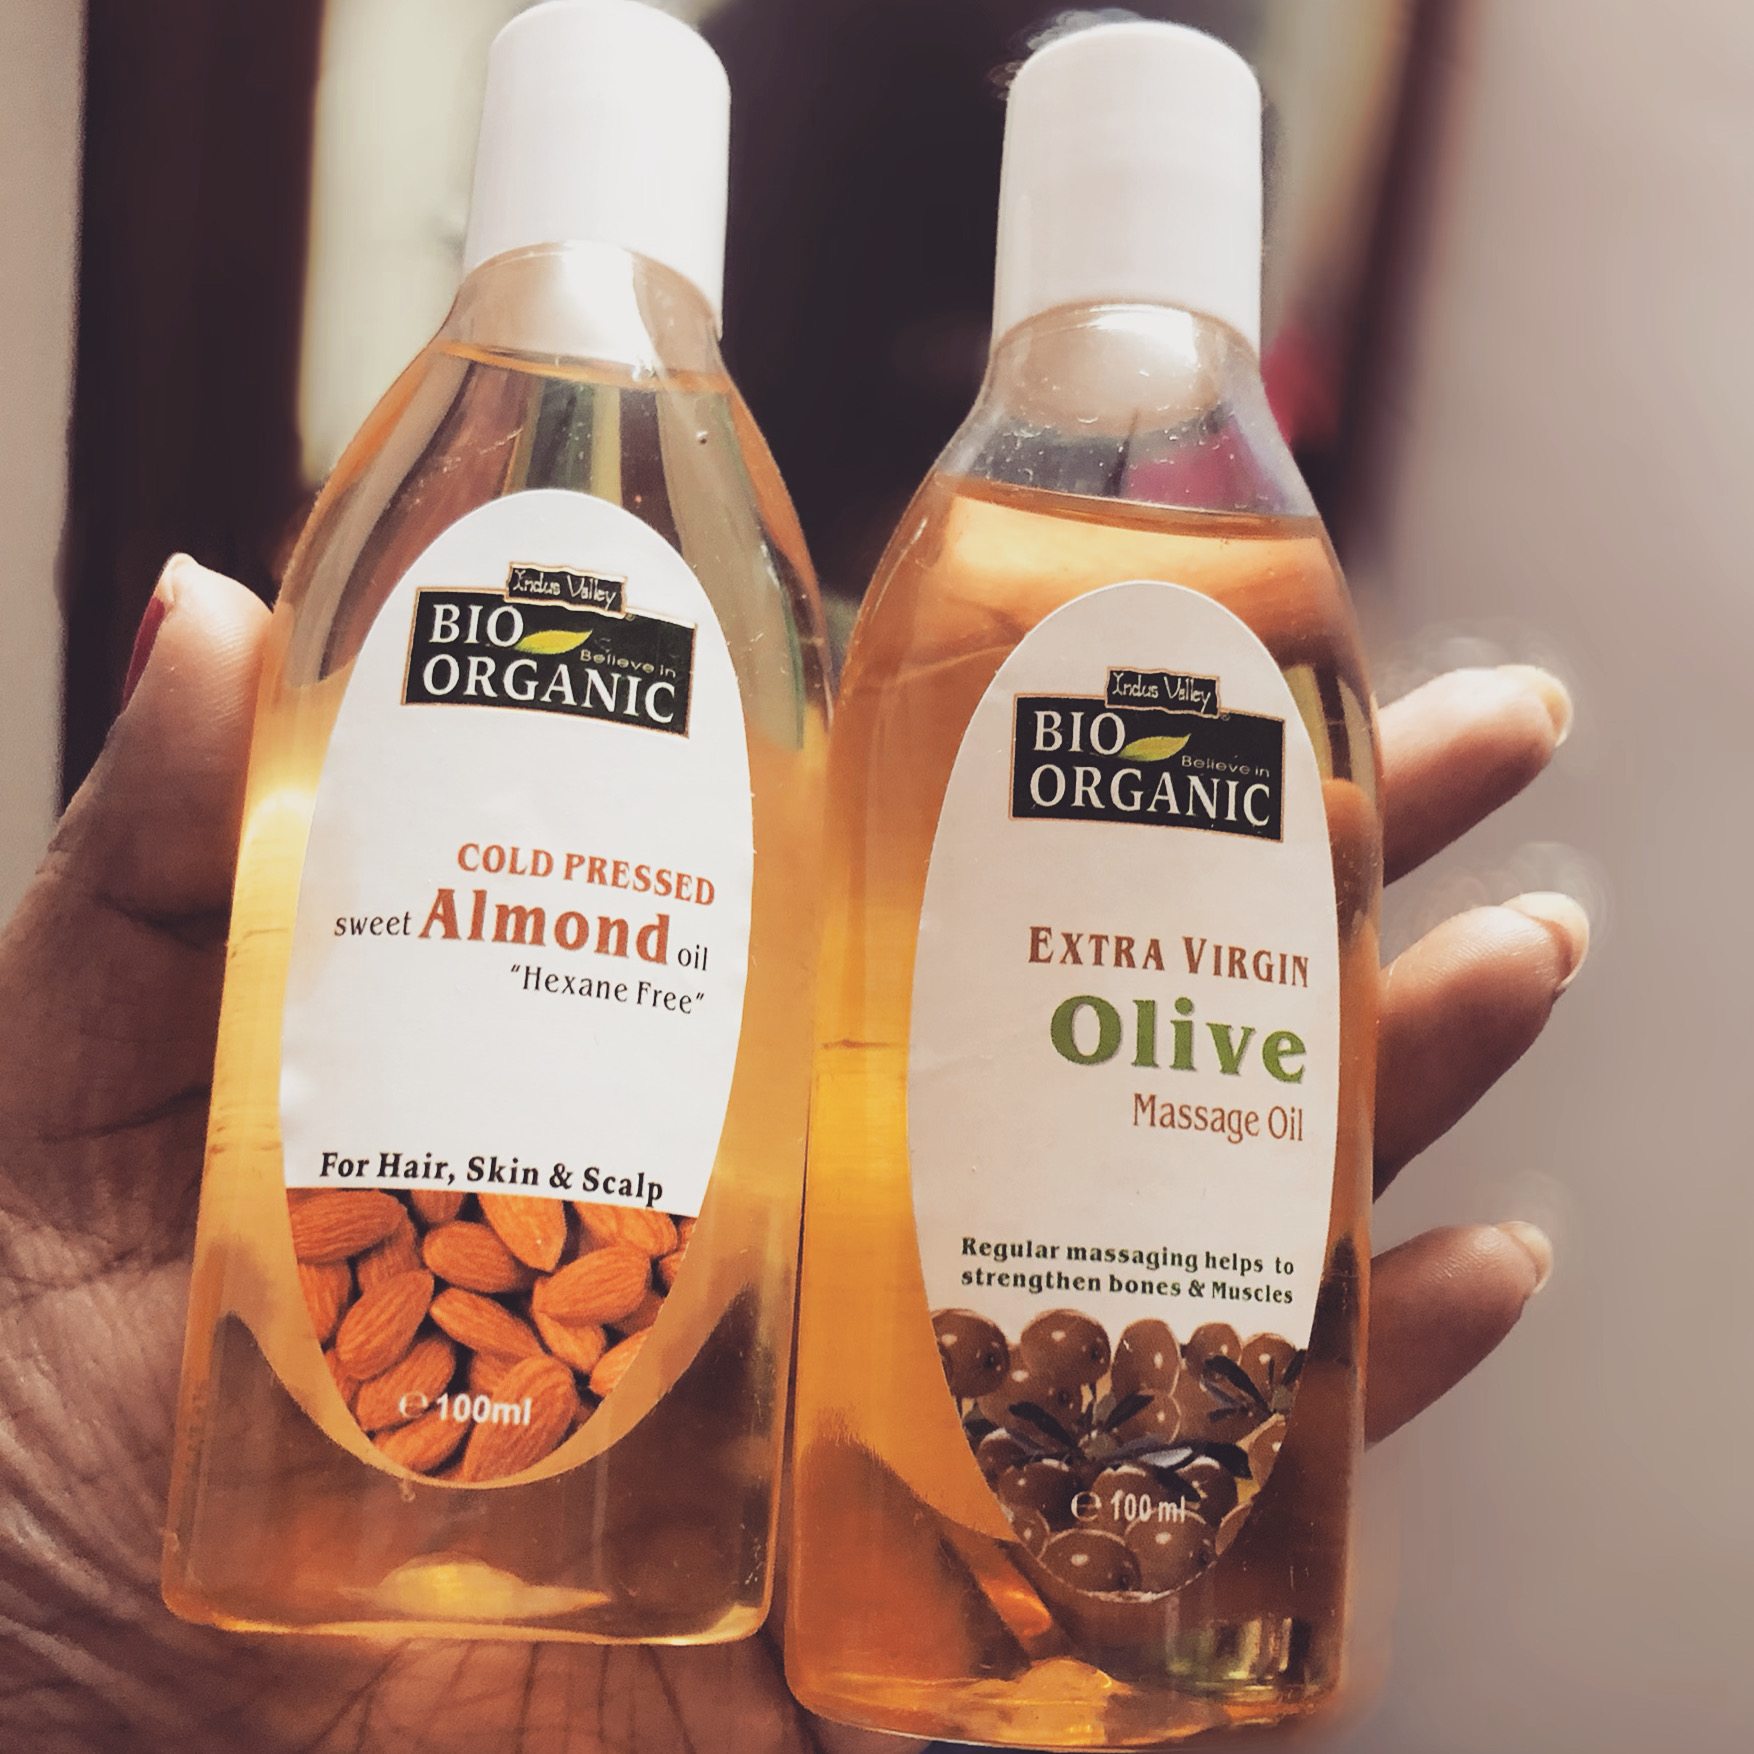 Indus Valley Bio Organic Extra Virgin Olive Massage Oil-Aroma proves the purity-By binatatrisha